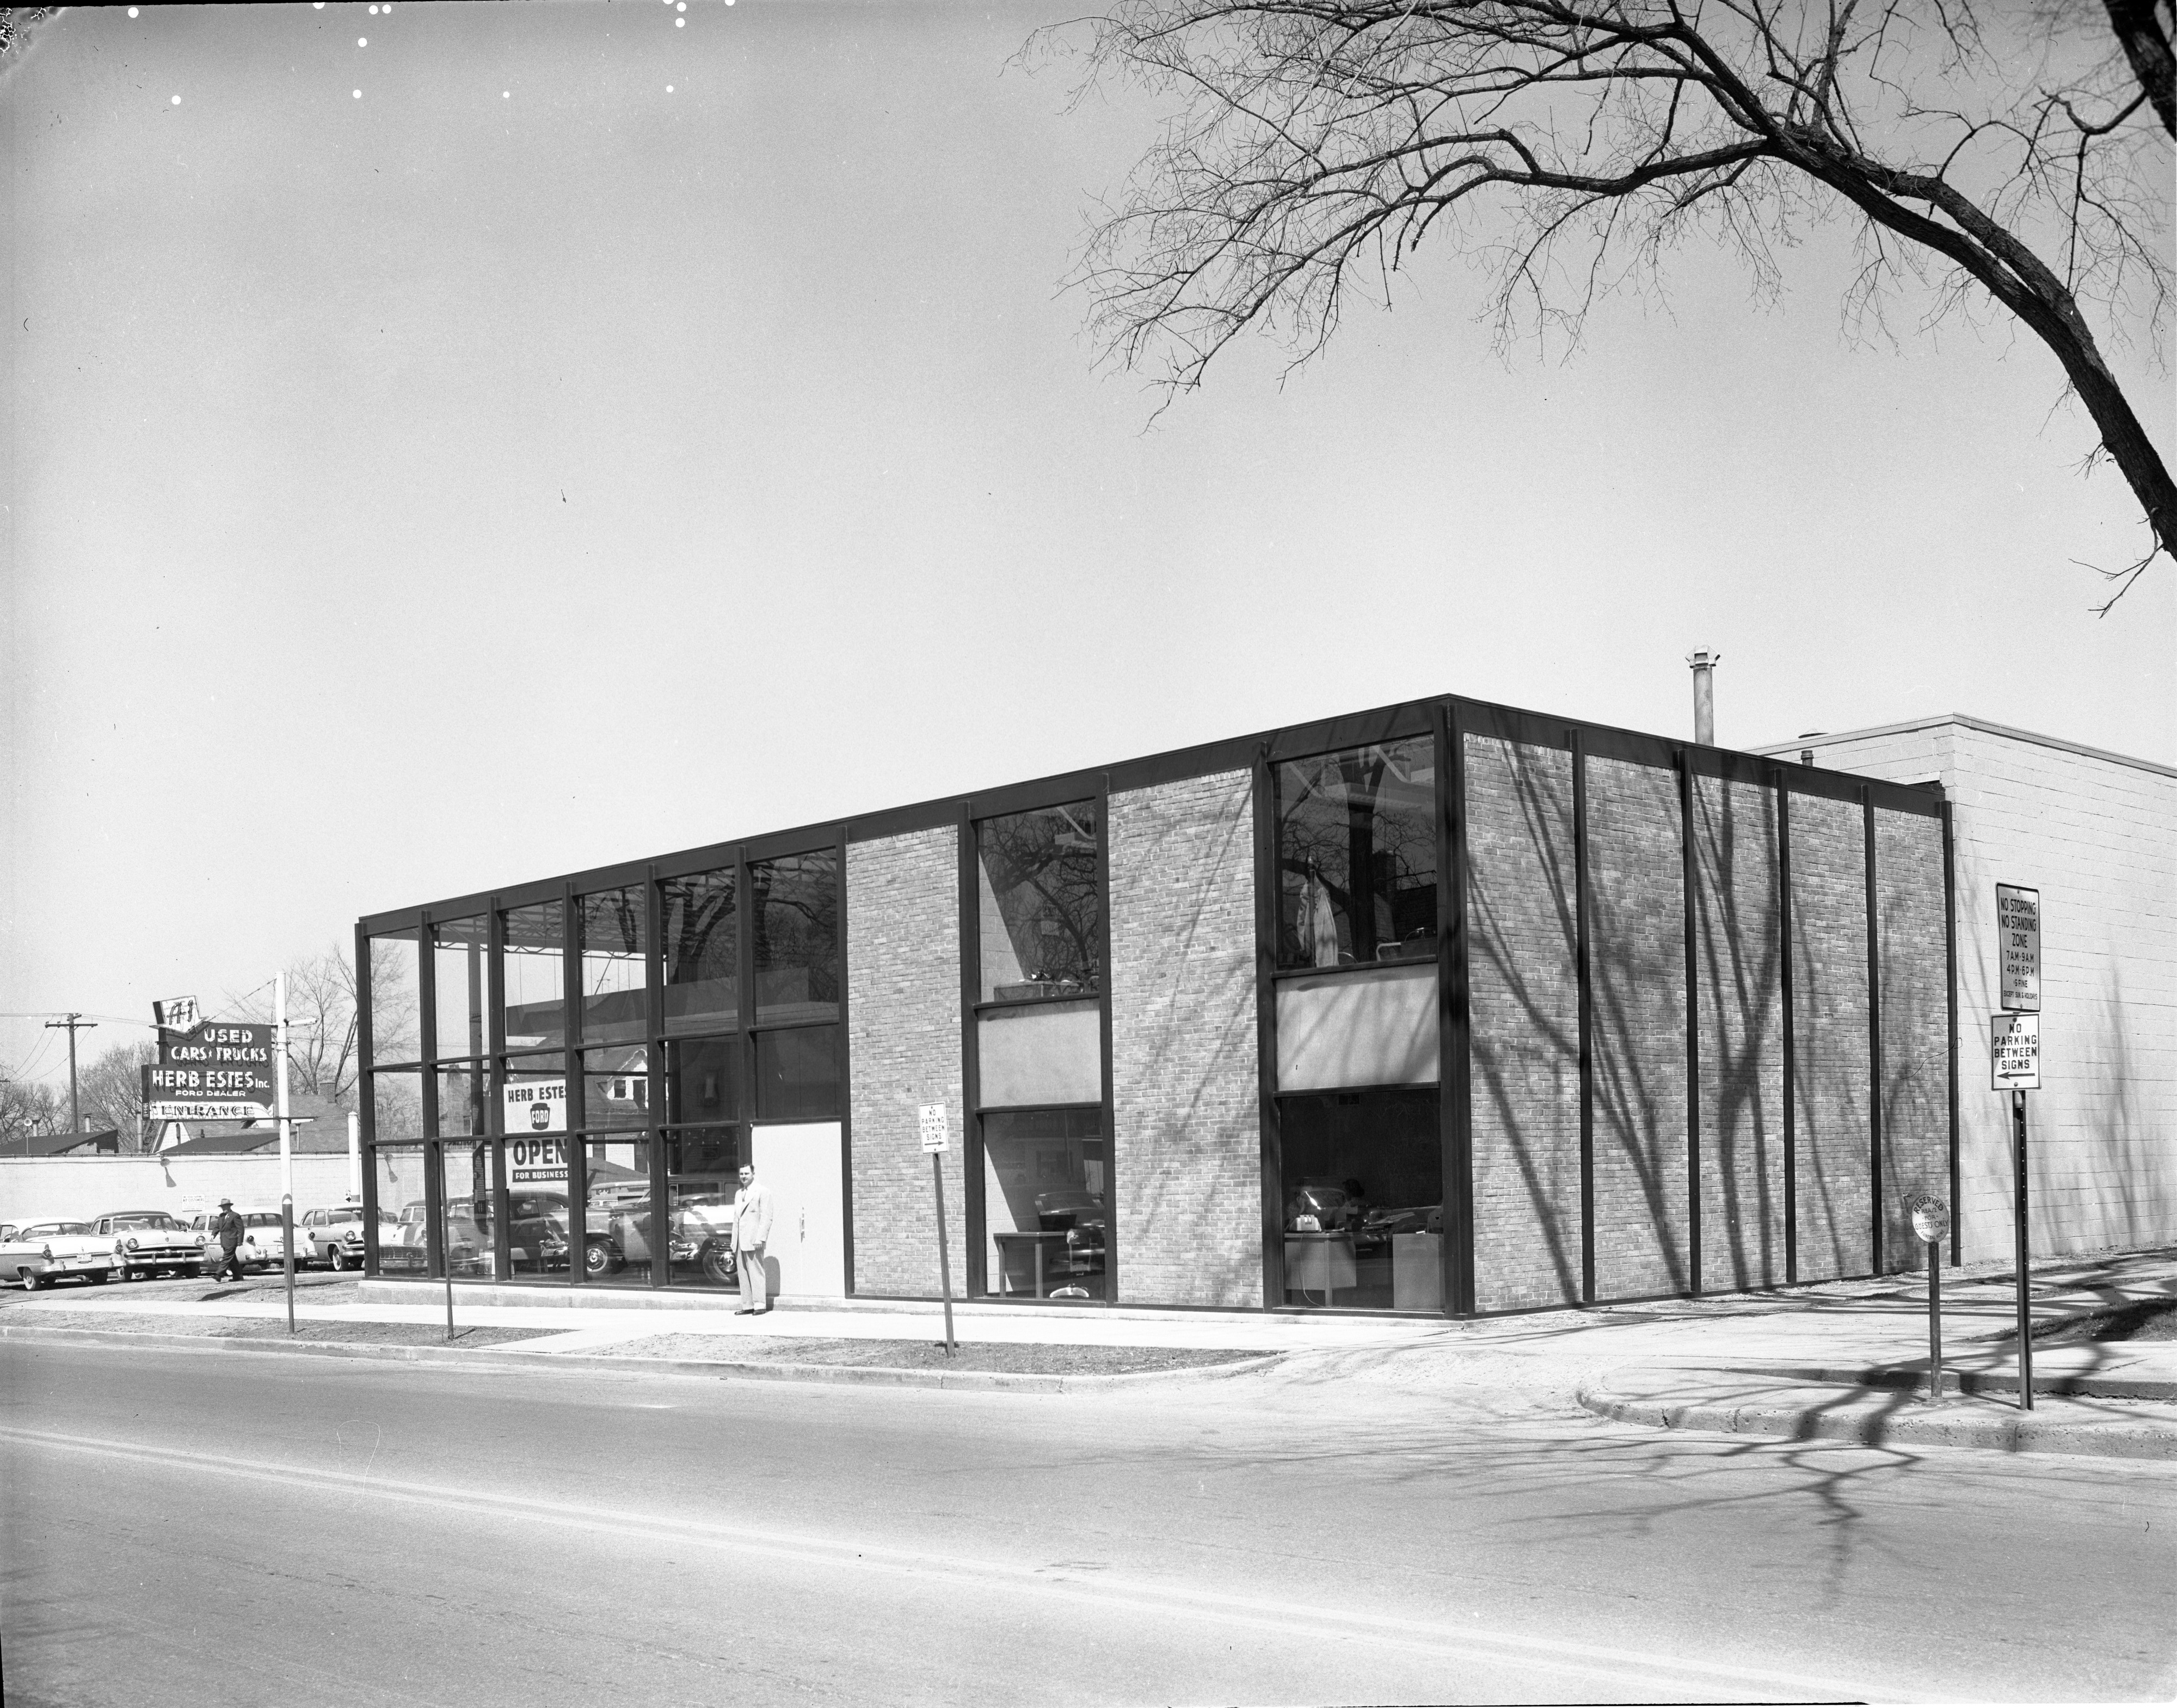 Herb Estes, Inc., In New Building - 503 E. Huron Street, May 1956 image